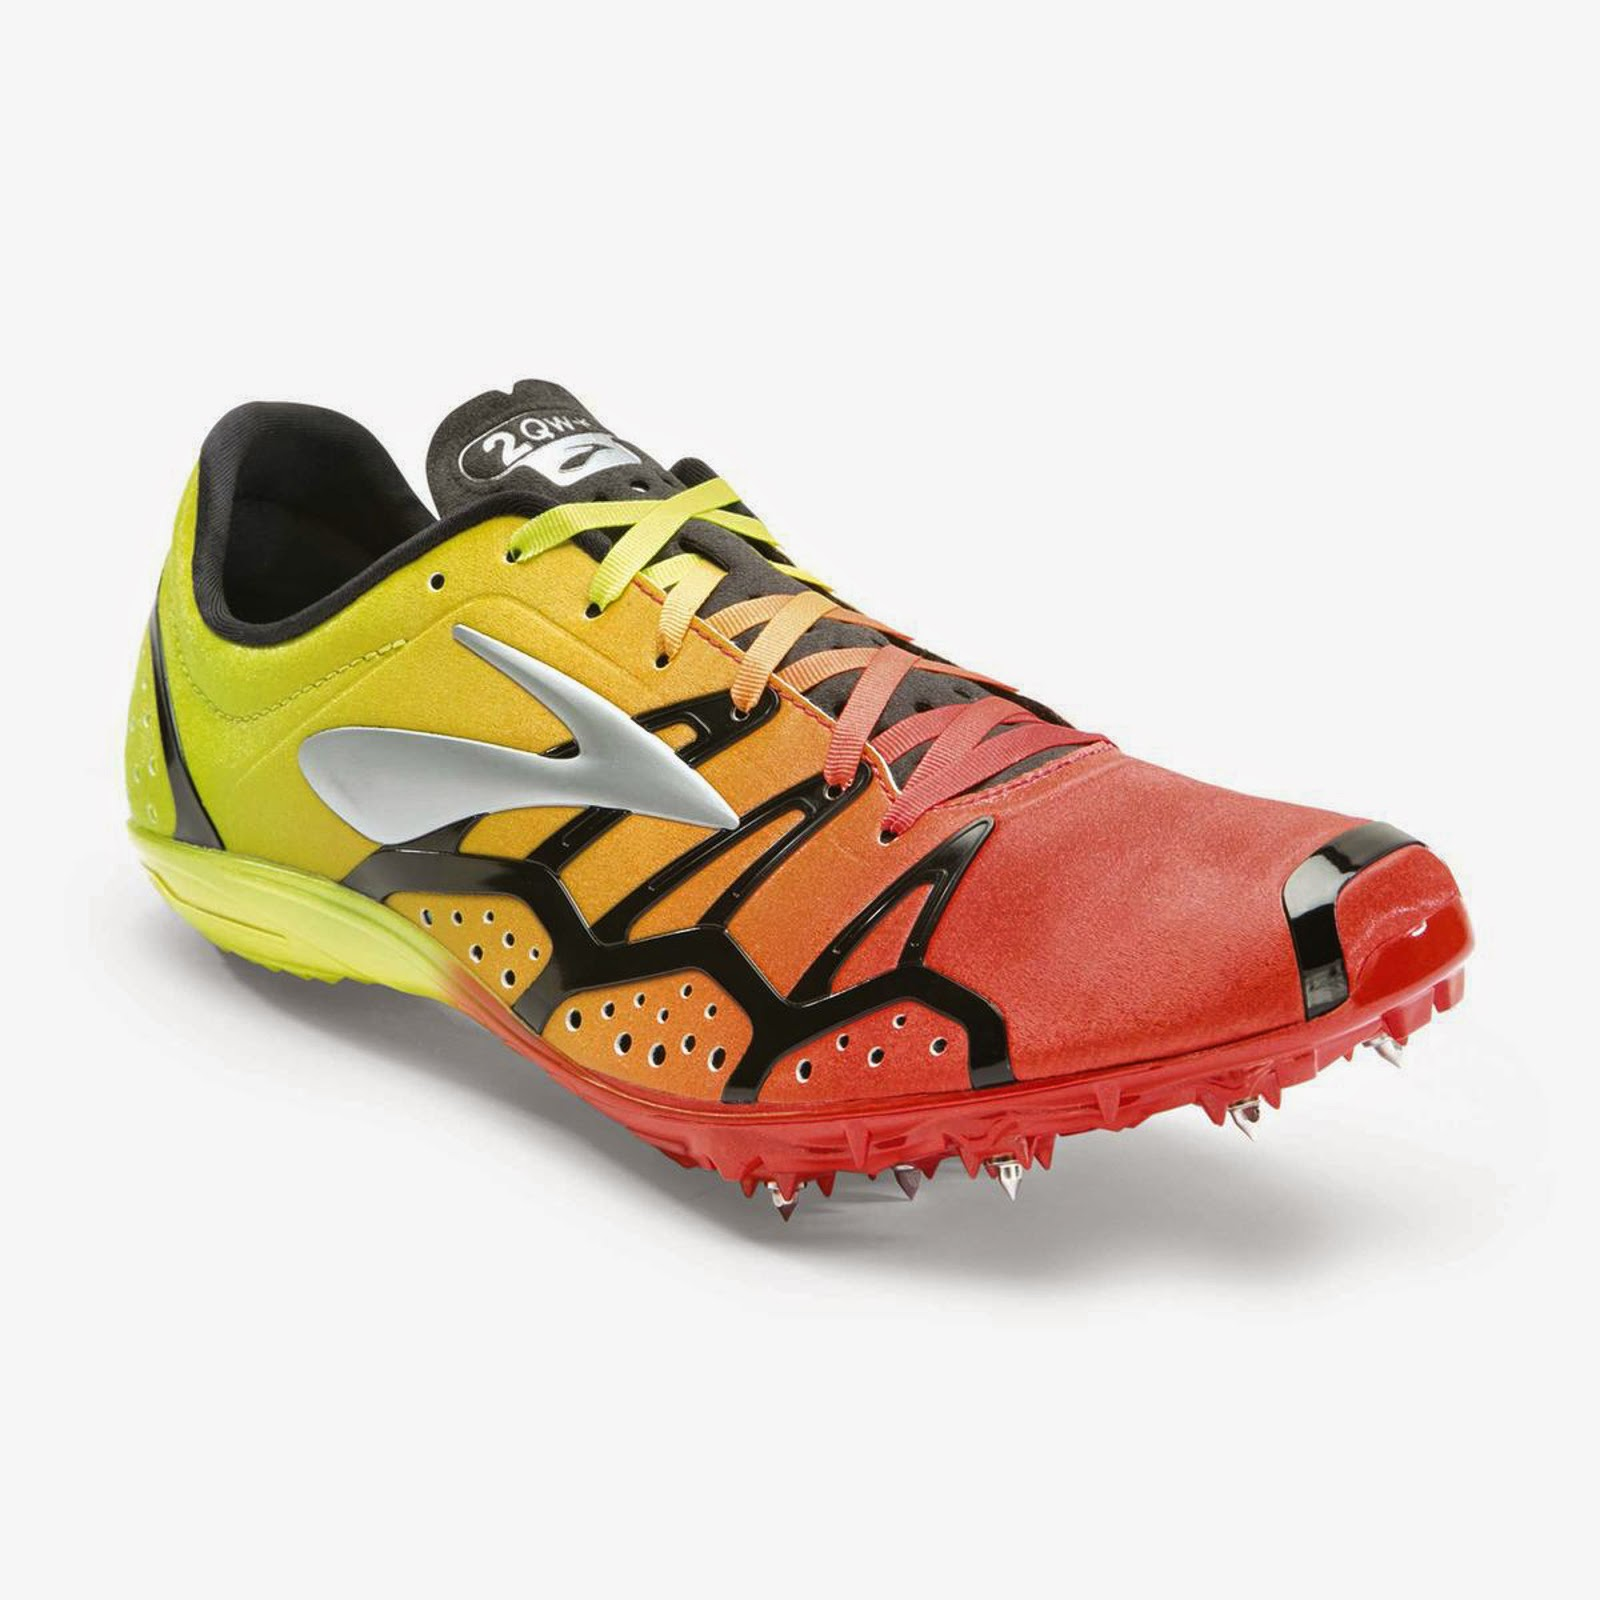 Brooks ELMN8 3 Running Spikes Middle Distance Track Racing Shoes Unisex Adults